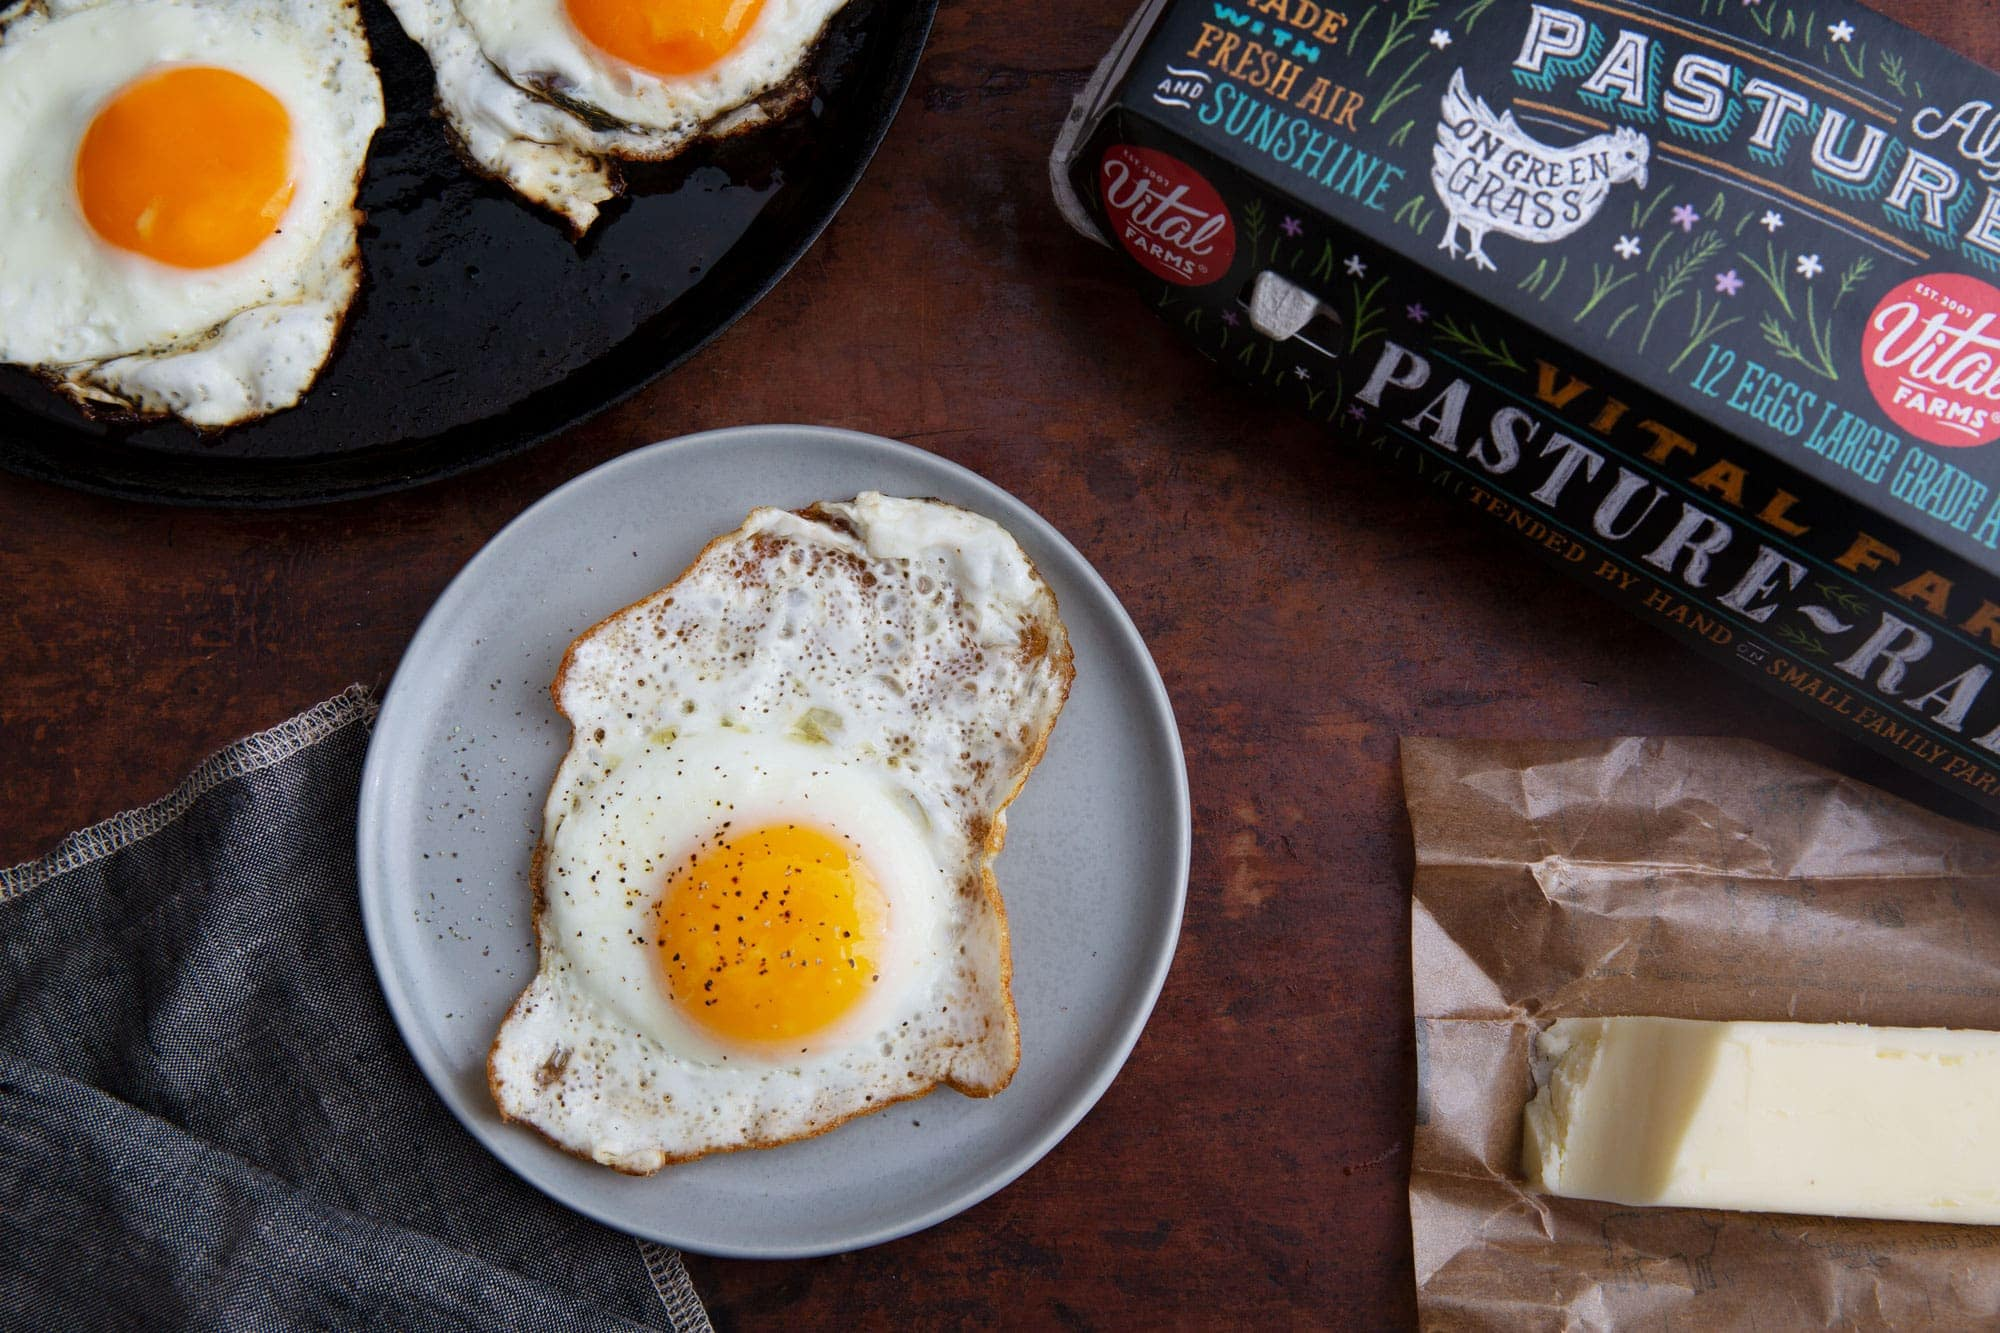 Two crispy fried eggs on a cast iron skillet in the upper left corner, a carton of pasture raised eggs and a stick of butter in the right corner and a crispy fried egg on a plate in the center of the table.